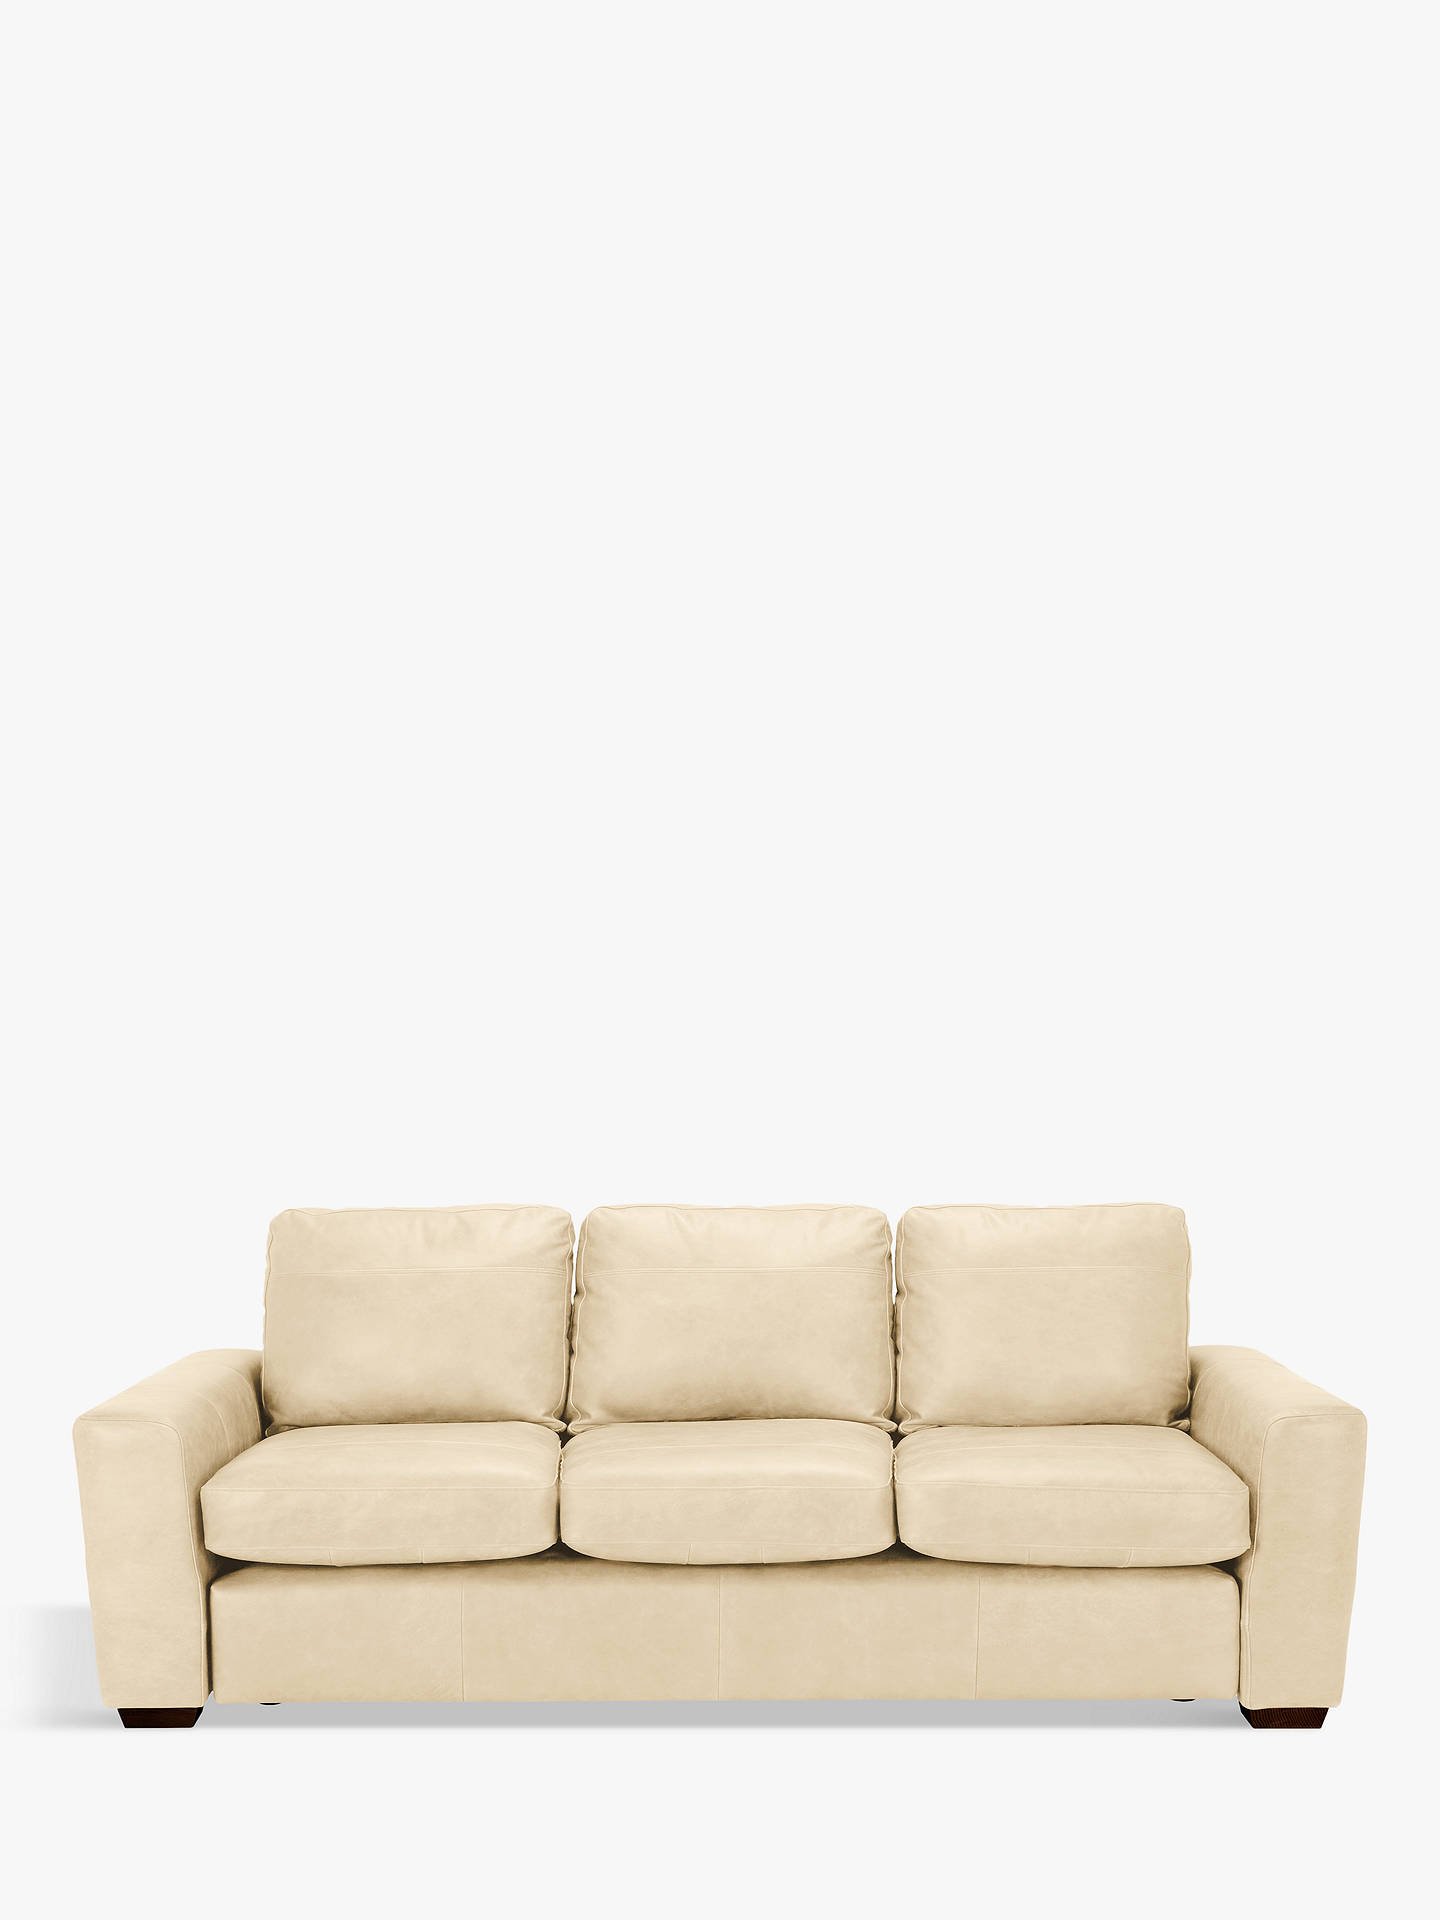 BuyHouse by John Lewis Oliver Grand 4 Seater Sofa, Dark Leg, Nature Cream Online at johnlewis.com